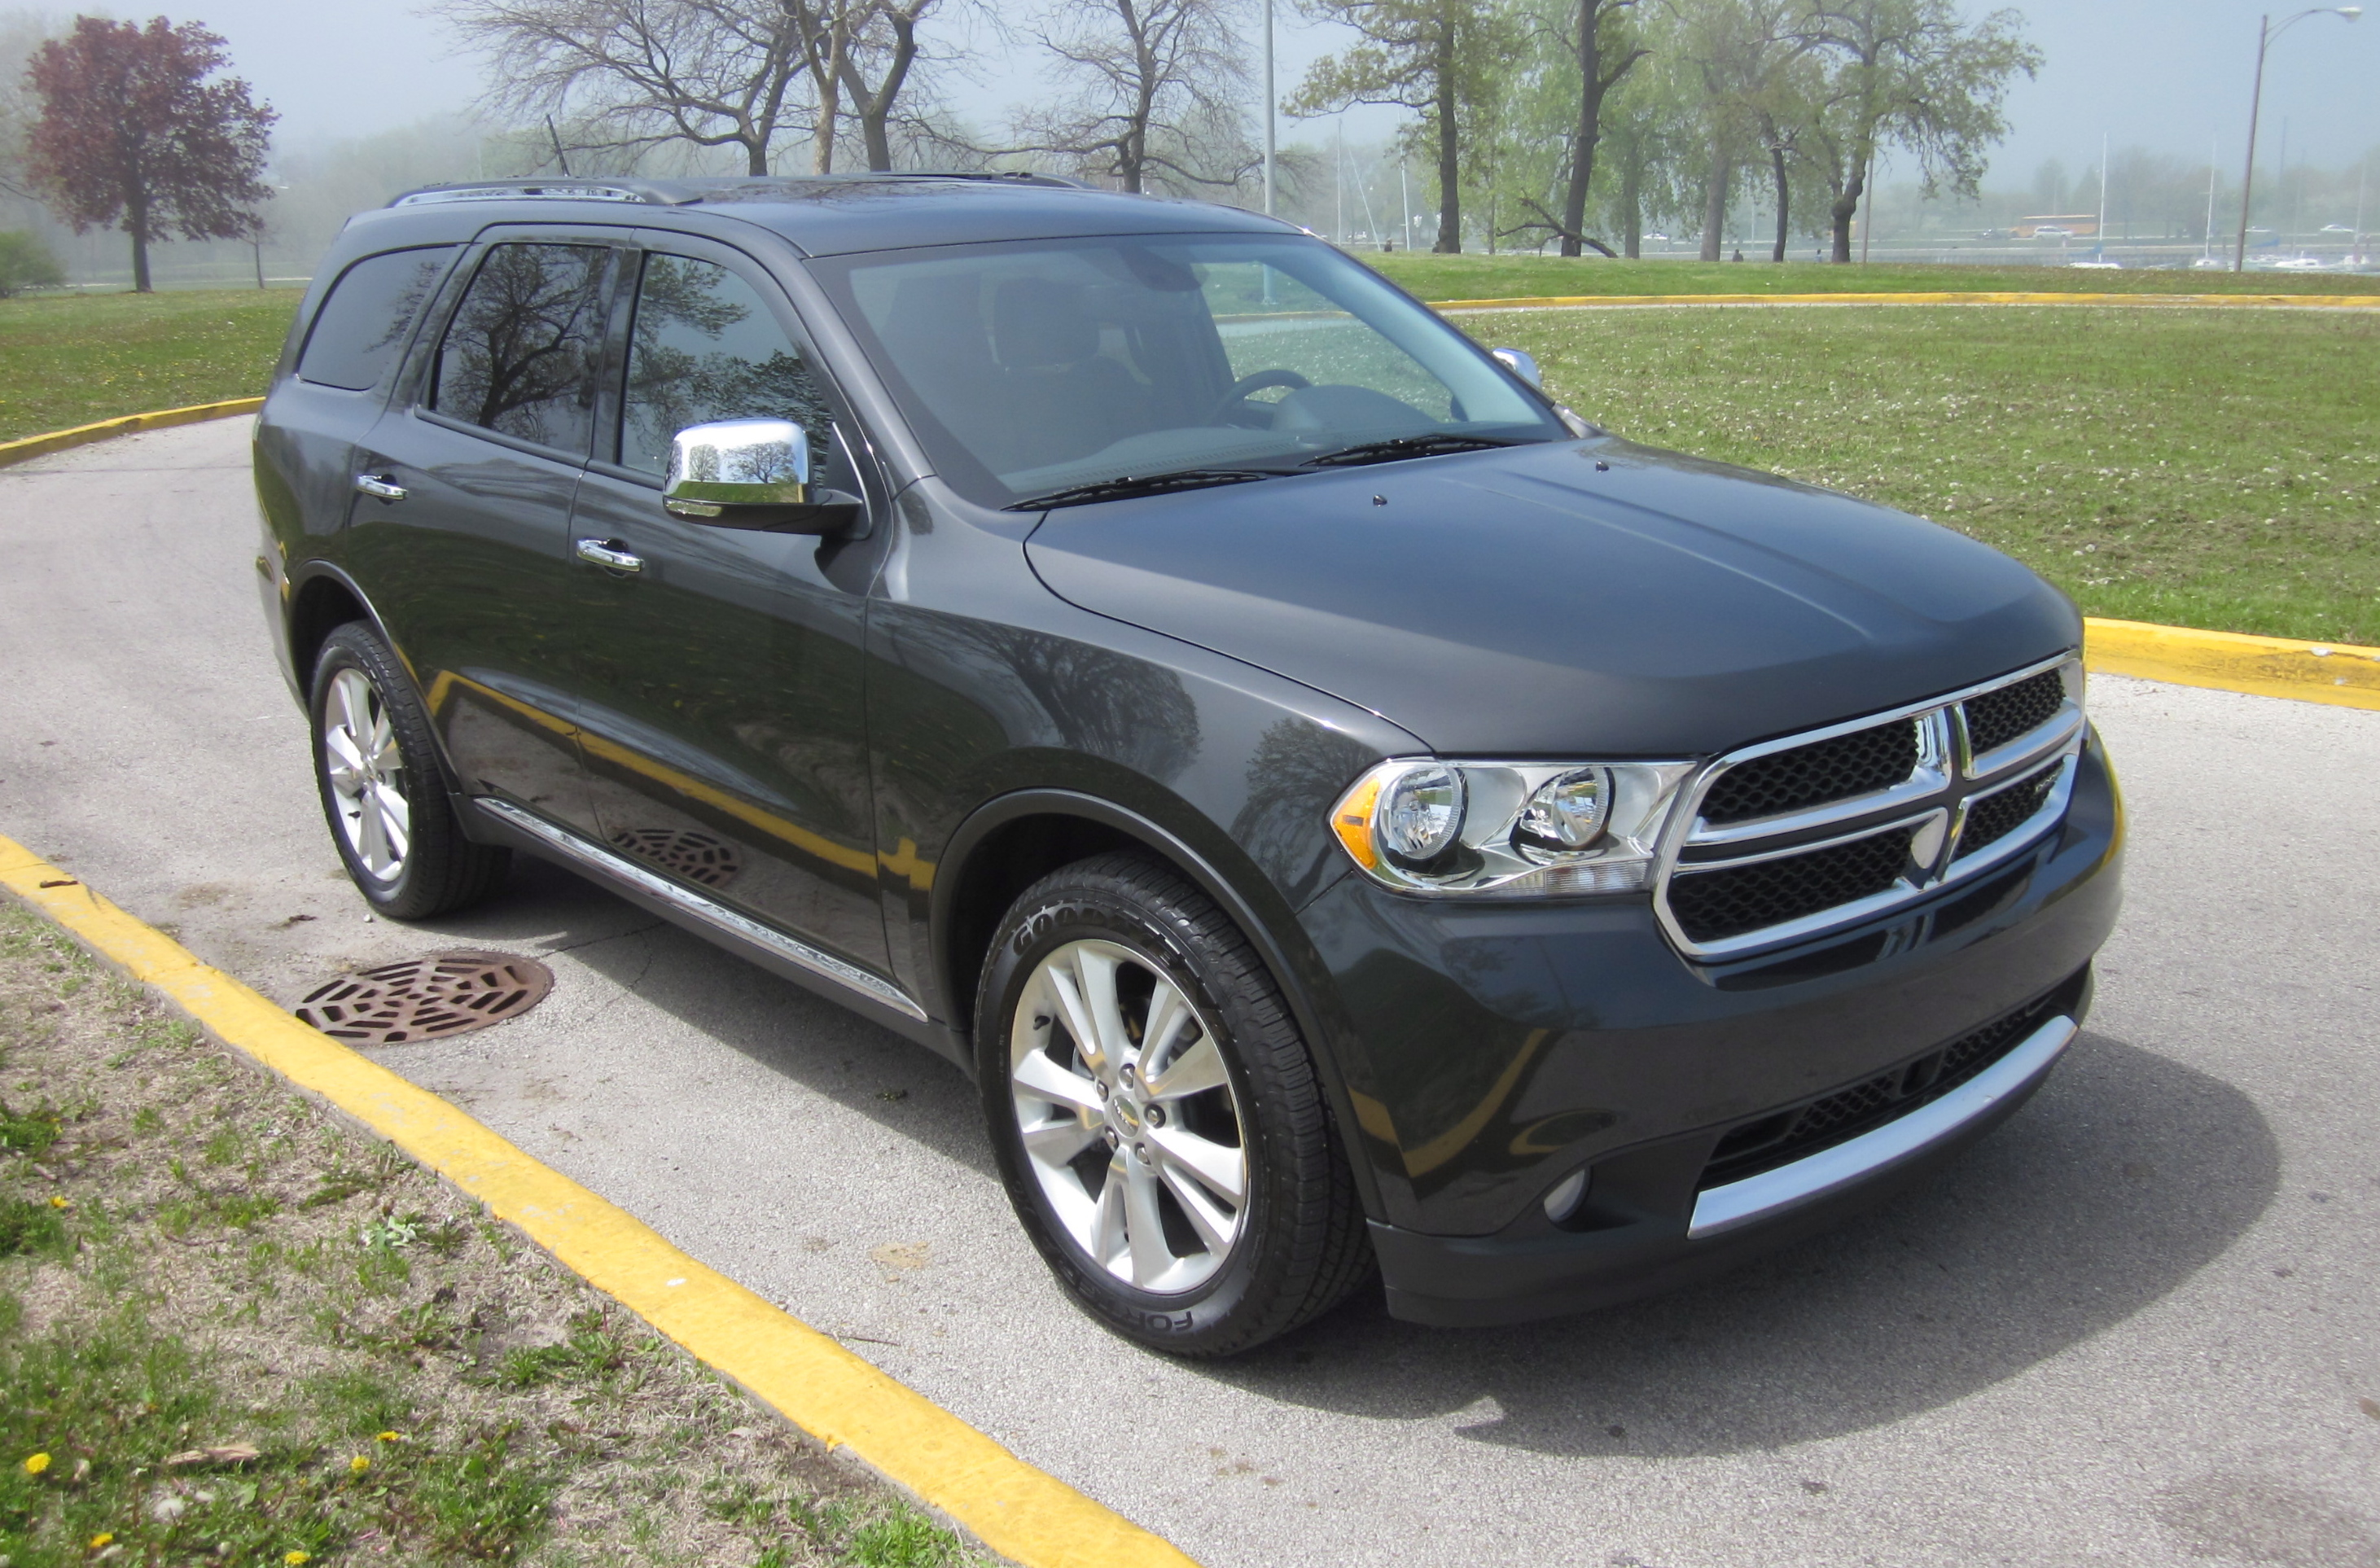 2011 dodge durango review and road test